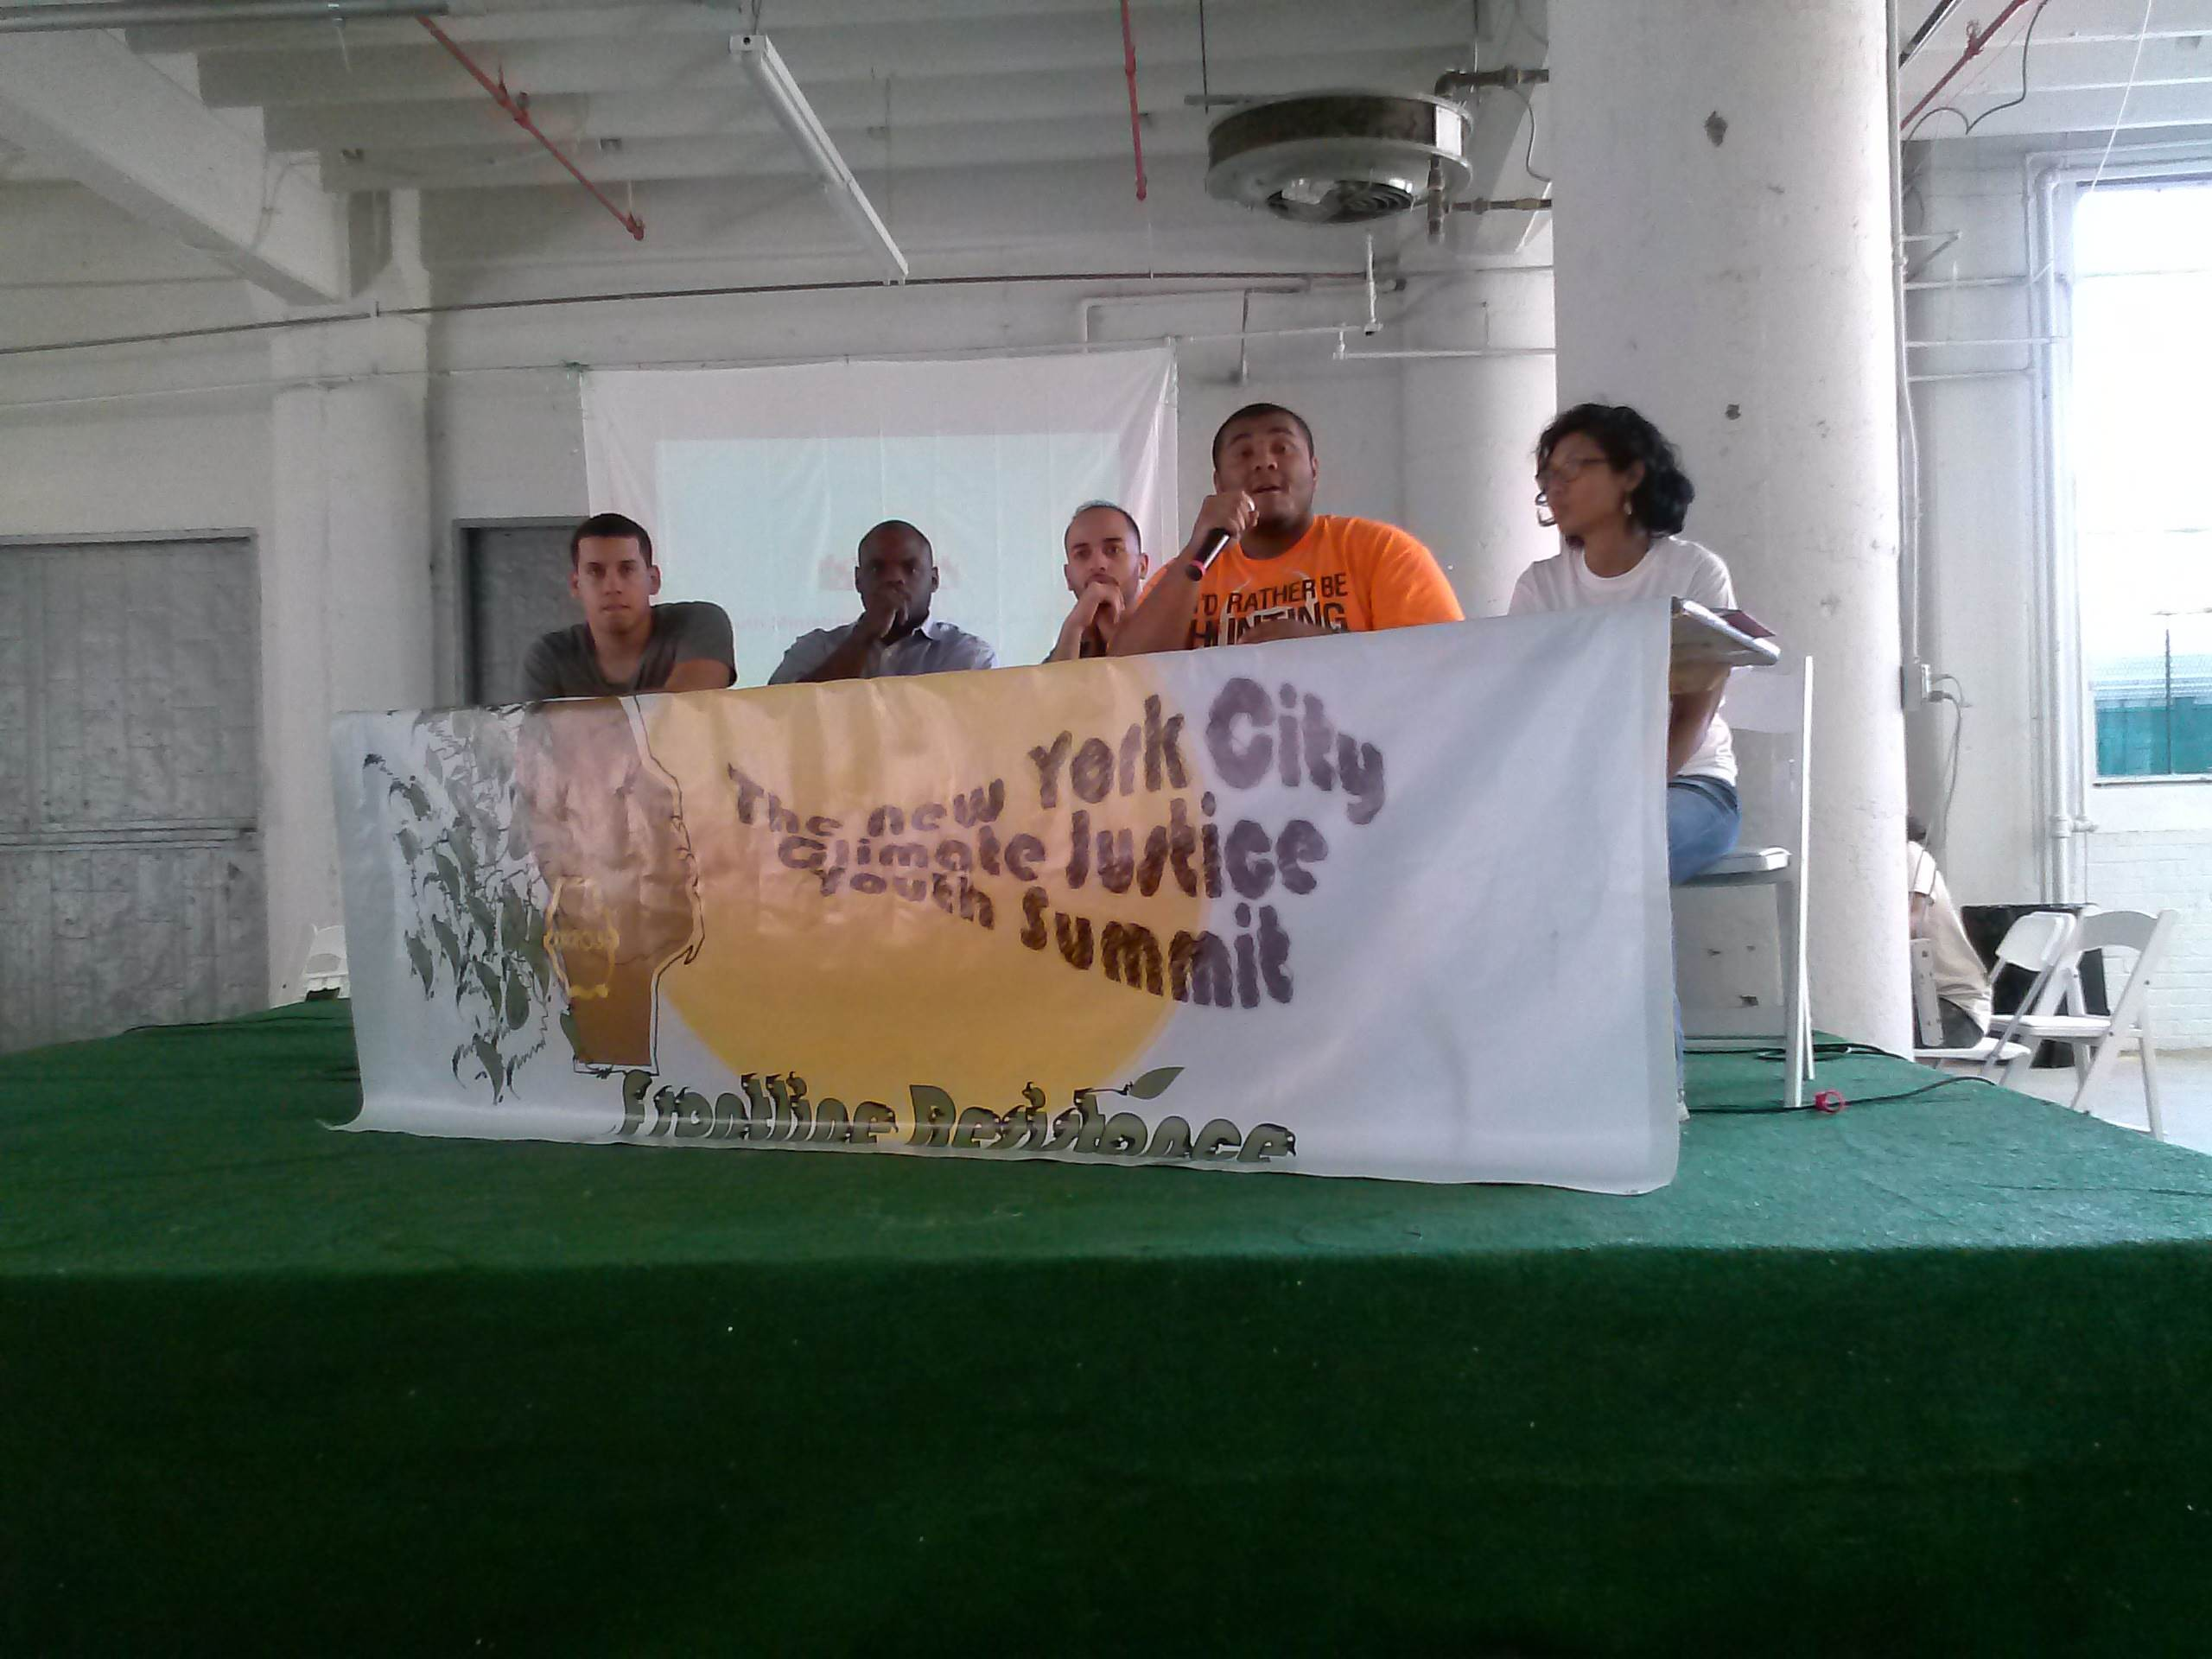 A panel at the New York Climate Justice Youth Summit in Brooklyn.